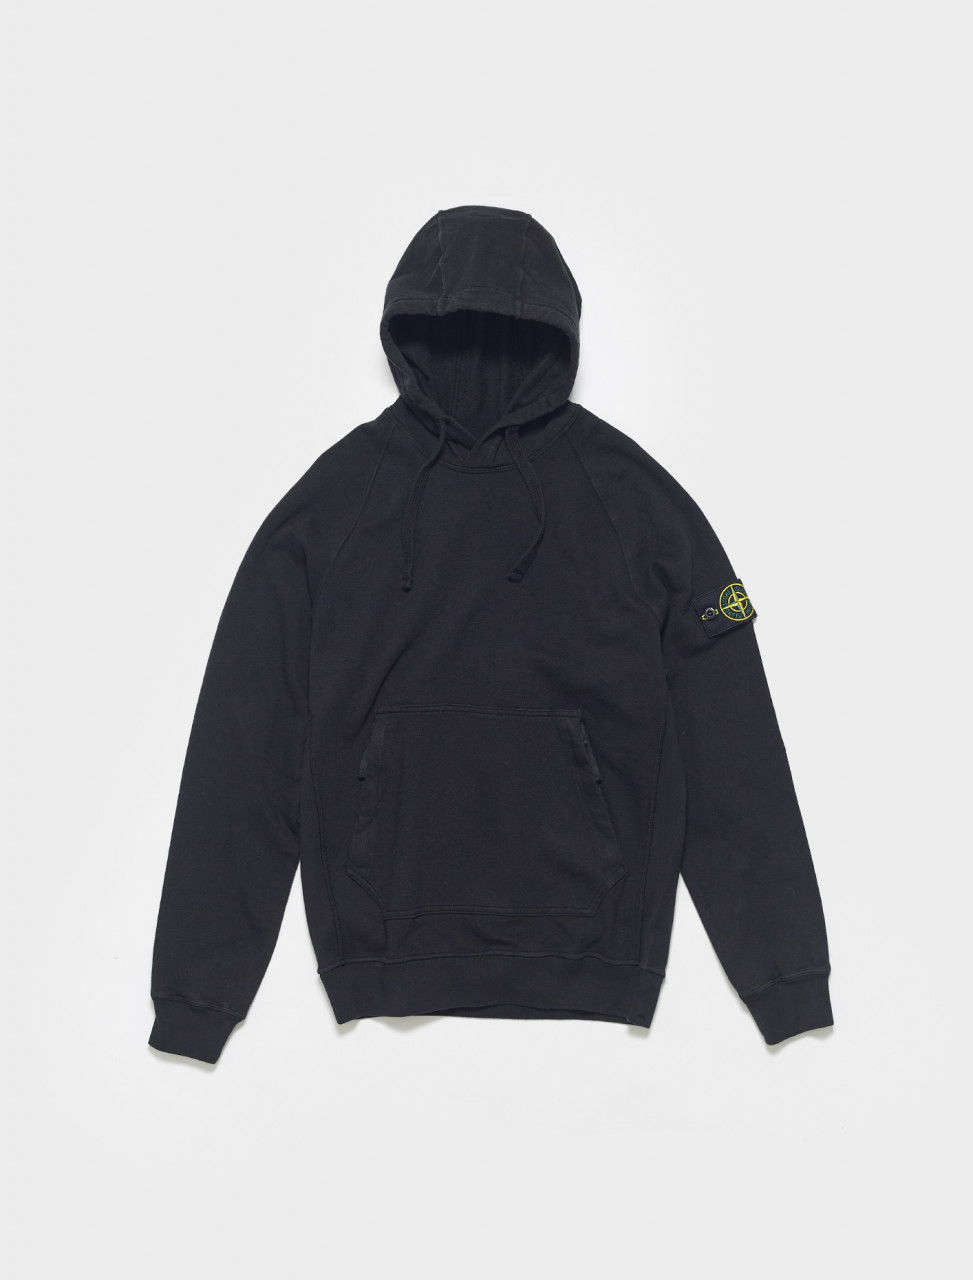 MO741563860-V0029 STONE ISLAND HOODIE WITH ZIP POCKET IN NERO